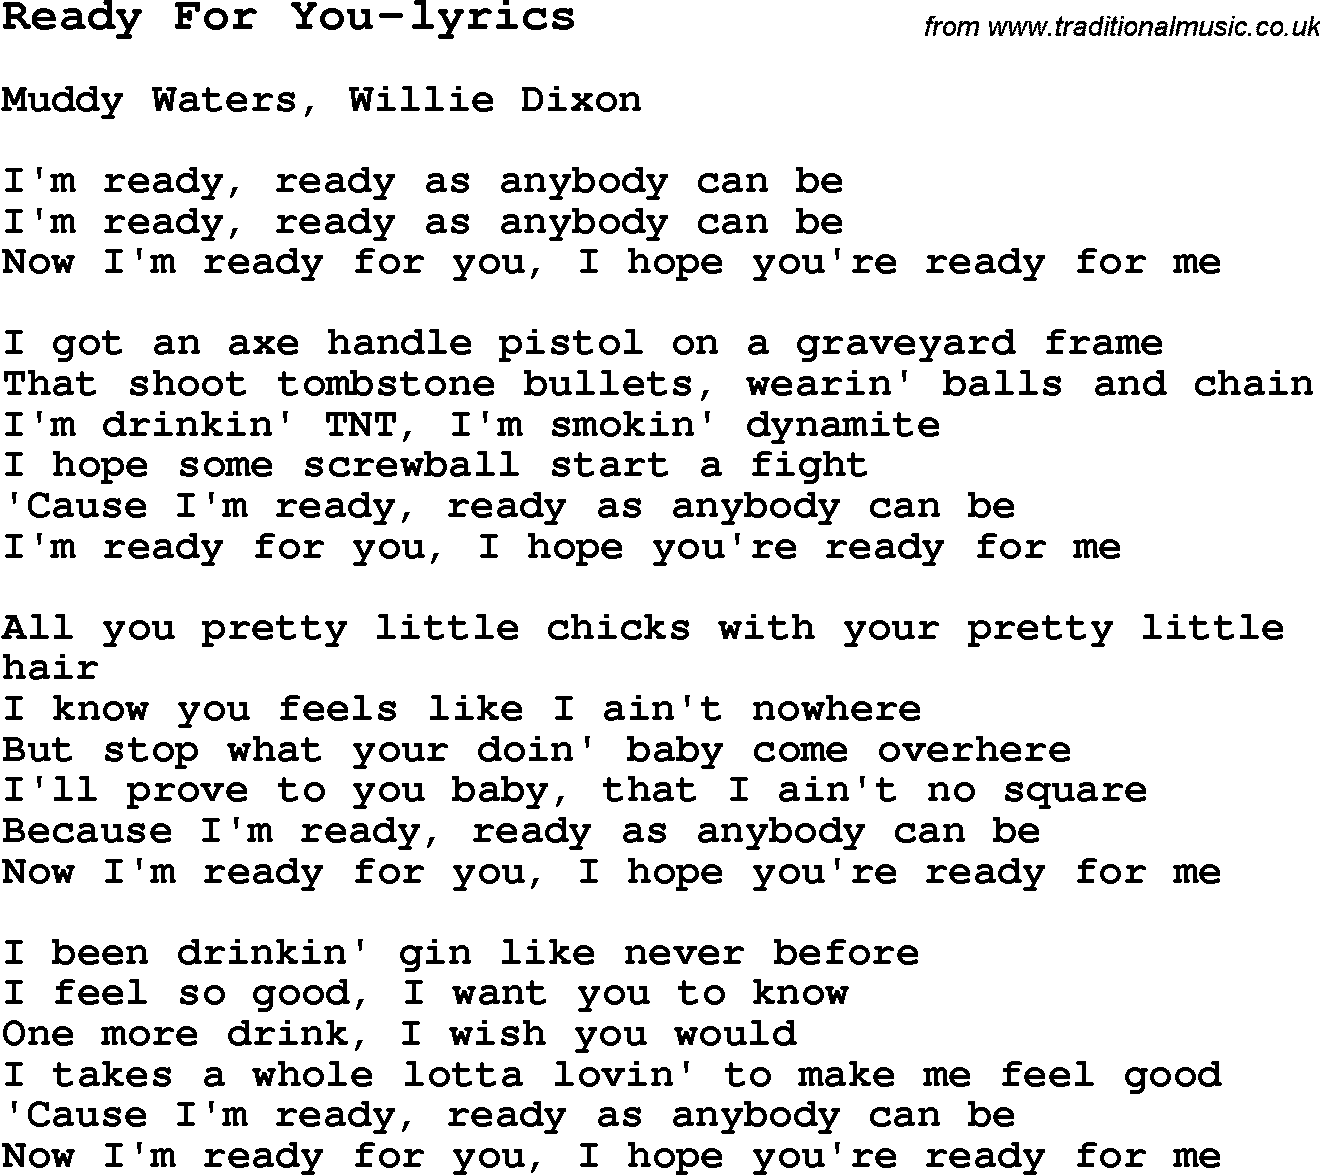 Lyrics containing the term: are you ready